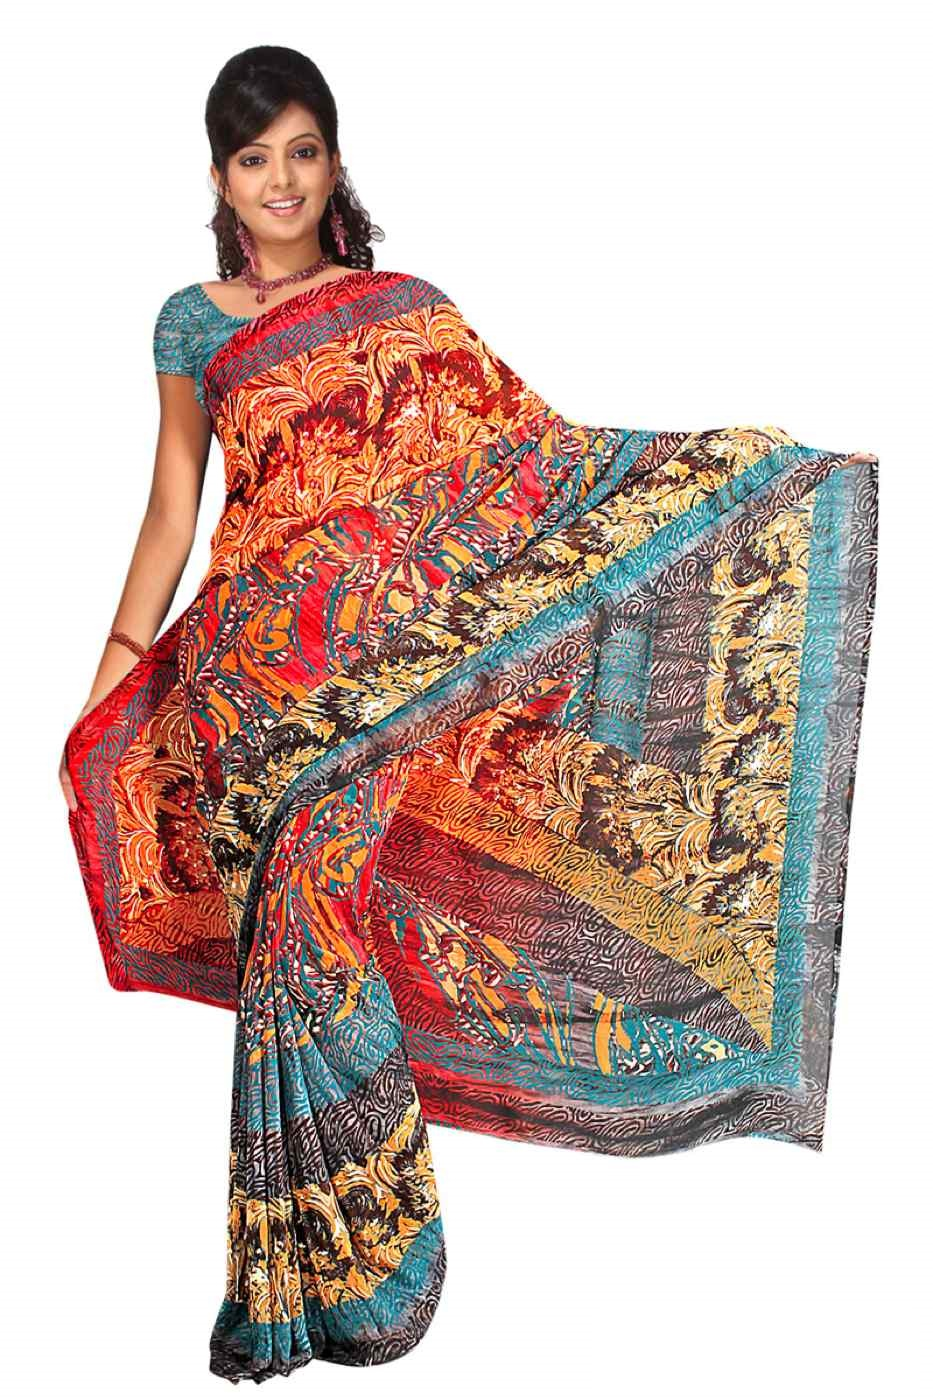 Divya Georgette Printed Casual Saree Sari Bellydance fabric